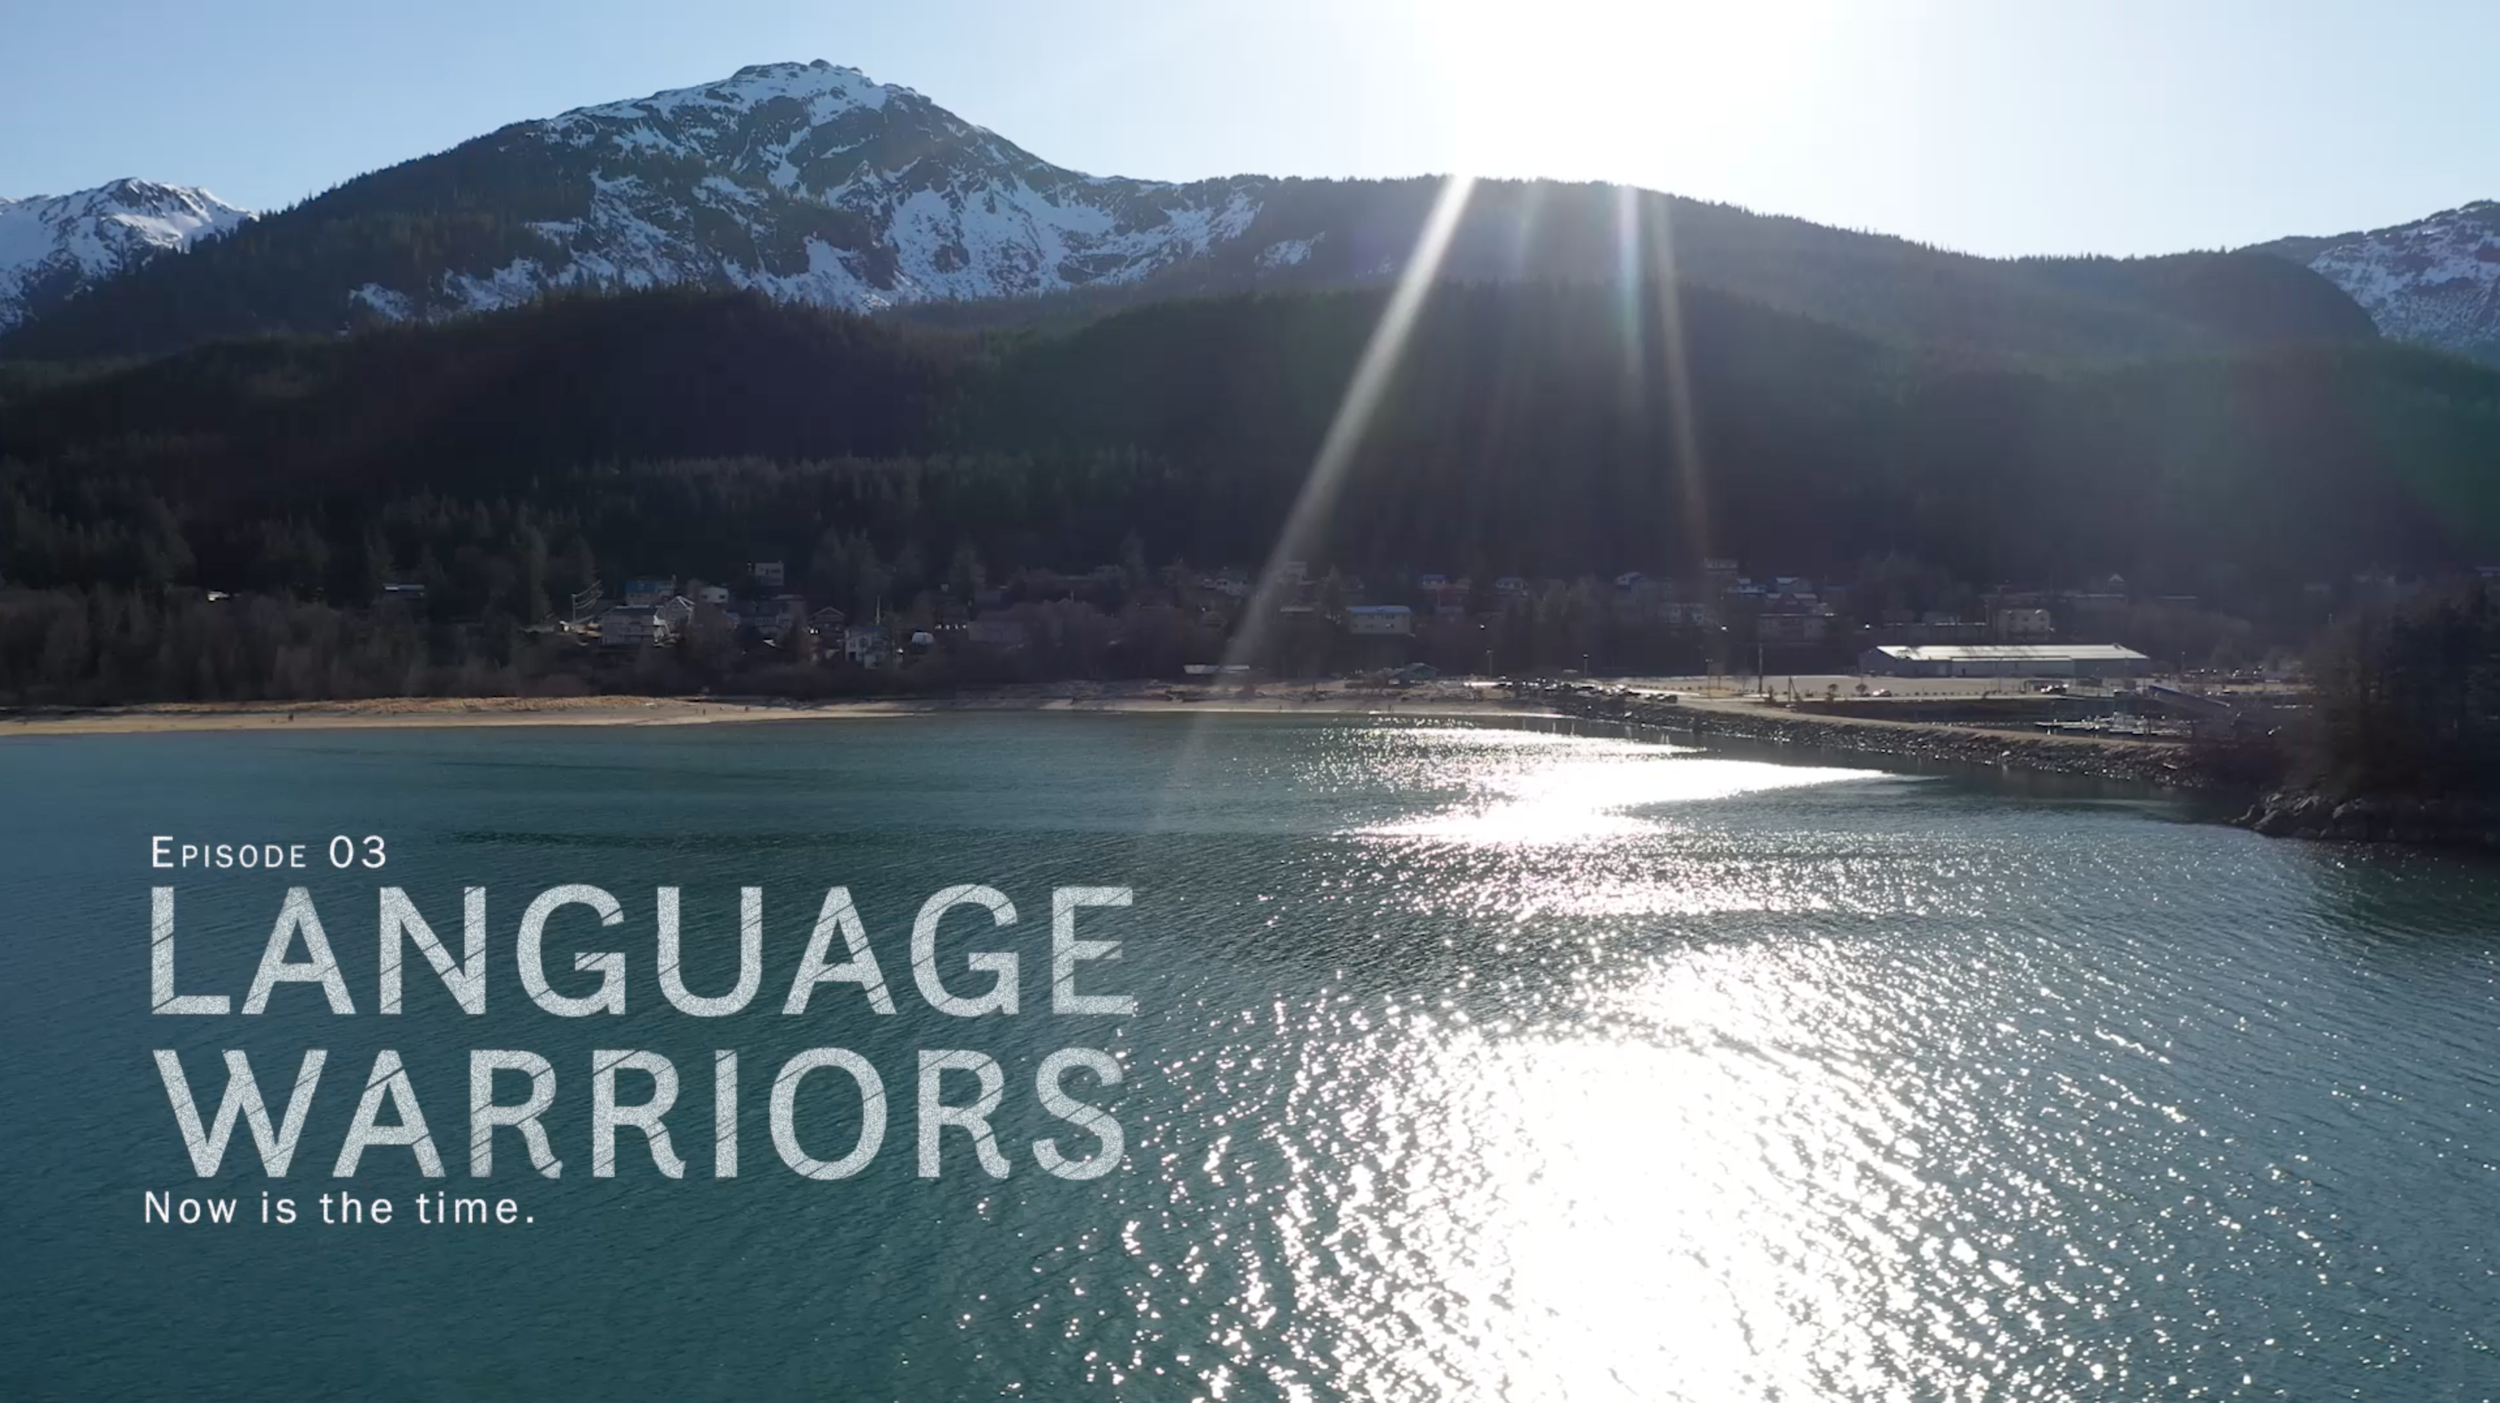 The 3rd movie in our series, LANGUAGE WARRIORS tells the story of 3 languages on the brink of extinction and the brave and determined people working to save them for future generations. Watch on  www.sealaska.com